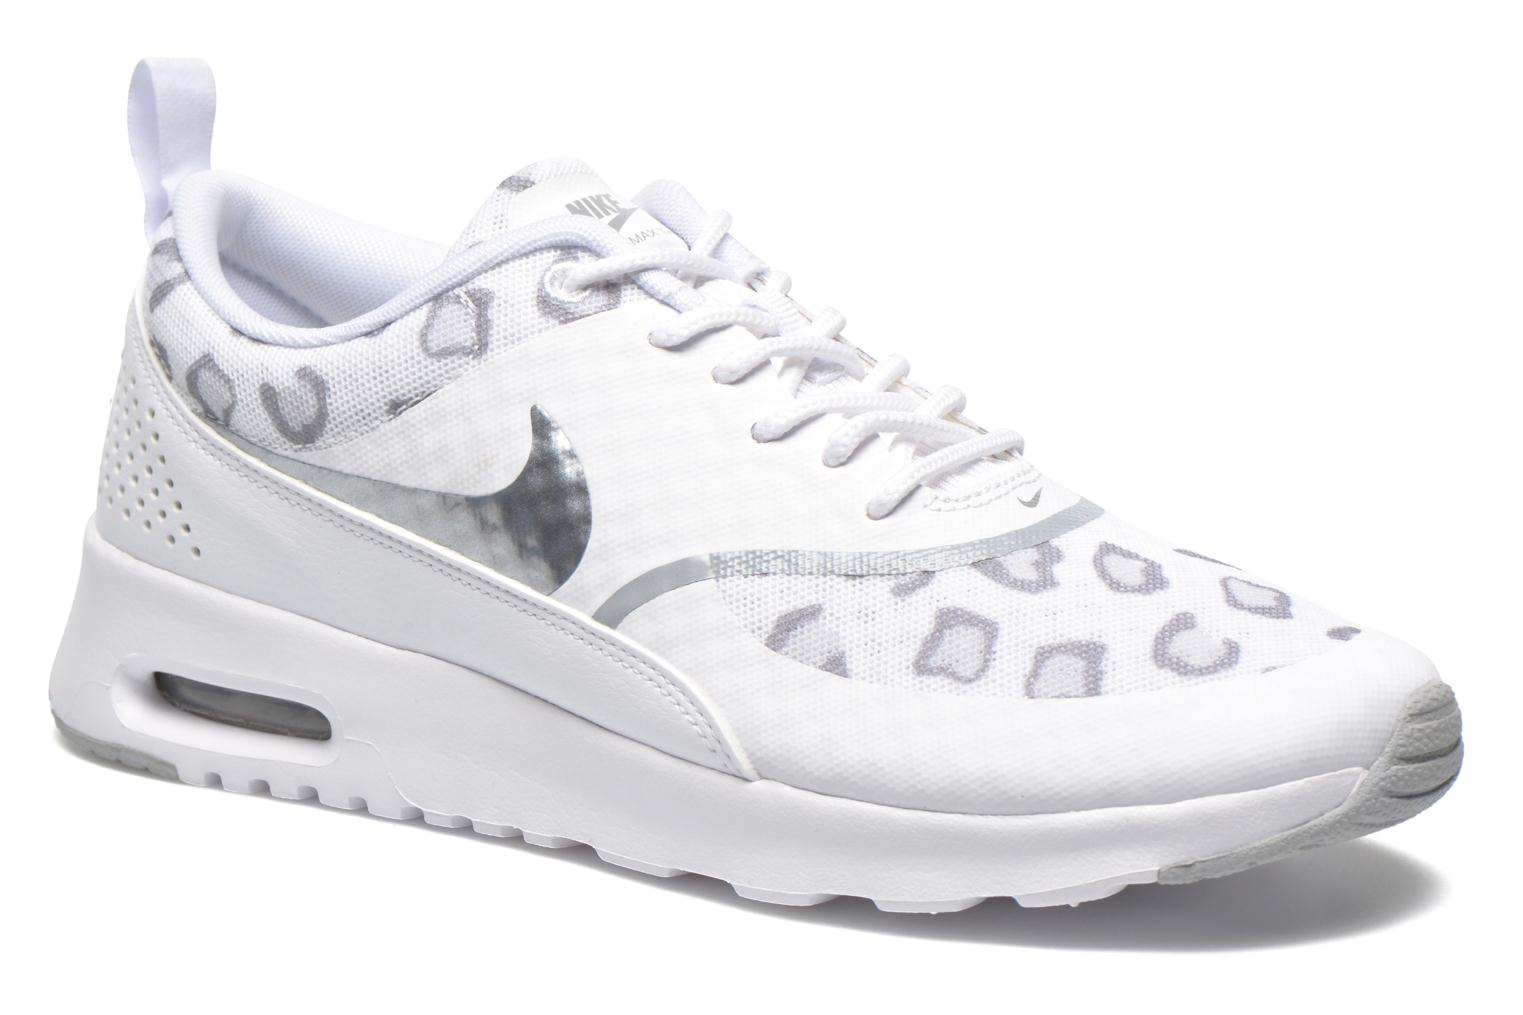 Wmns Nike Air Max Thea Print White/wolf grey-pure platinum